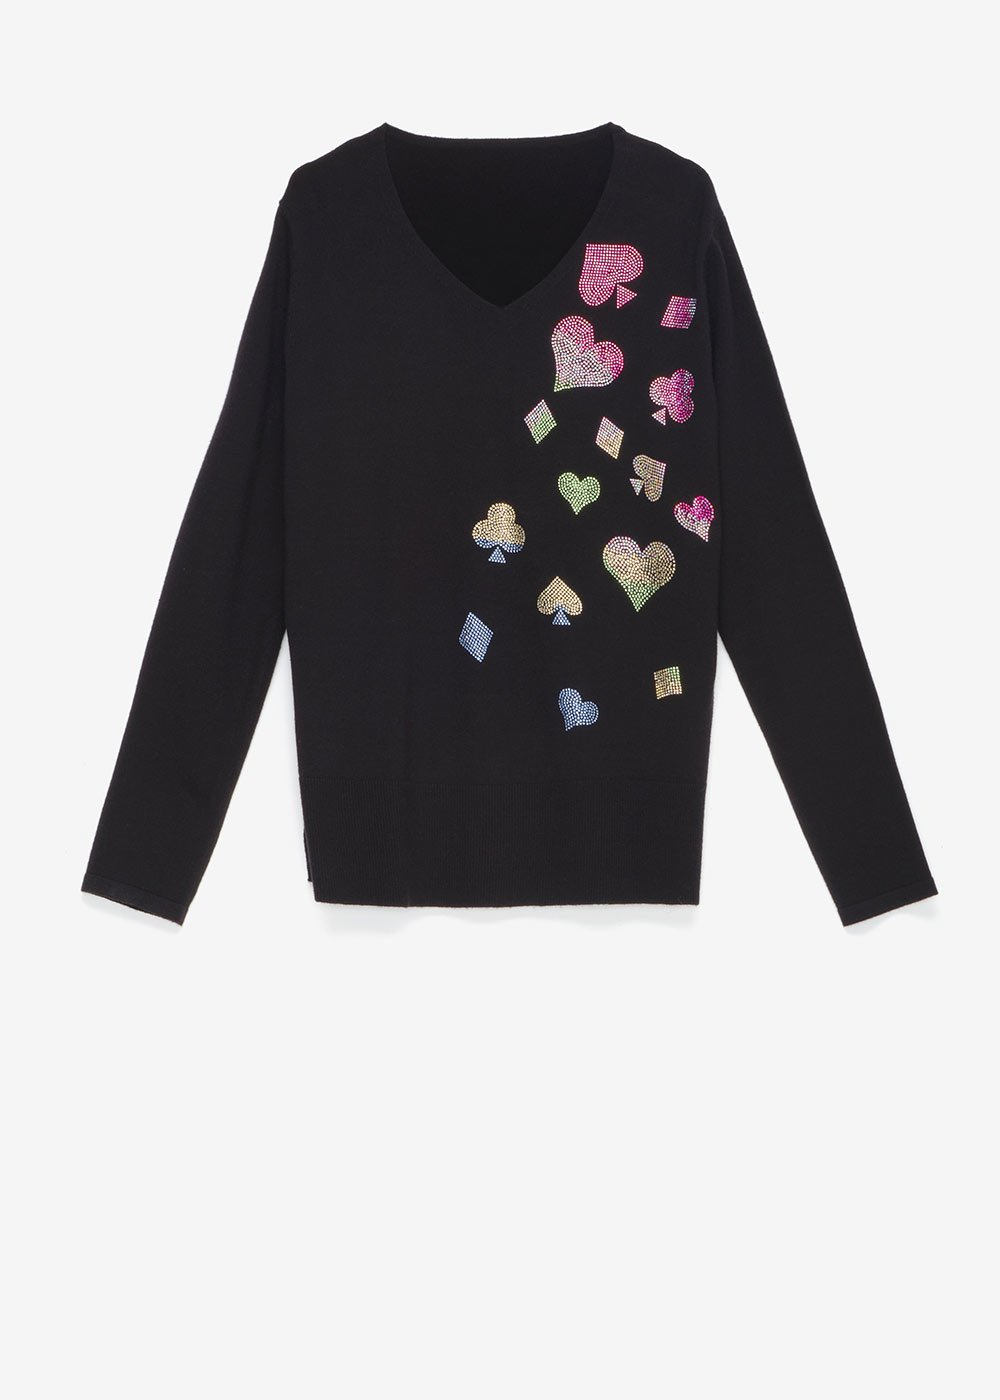 Maryl sweater with rhinestone appliqué - Black - Woman